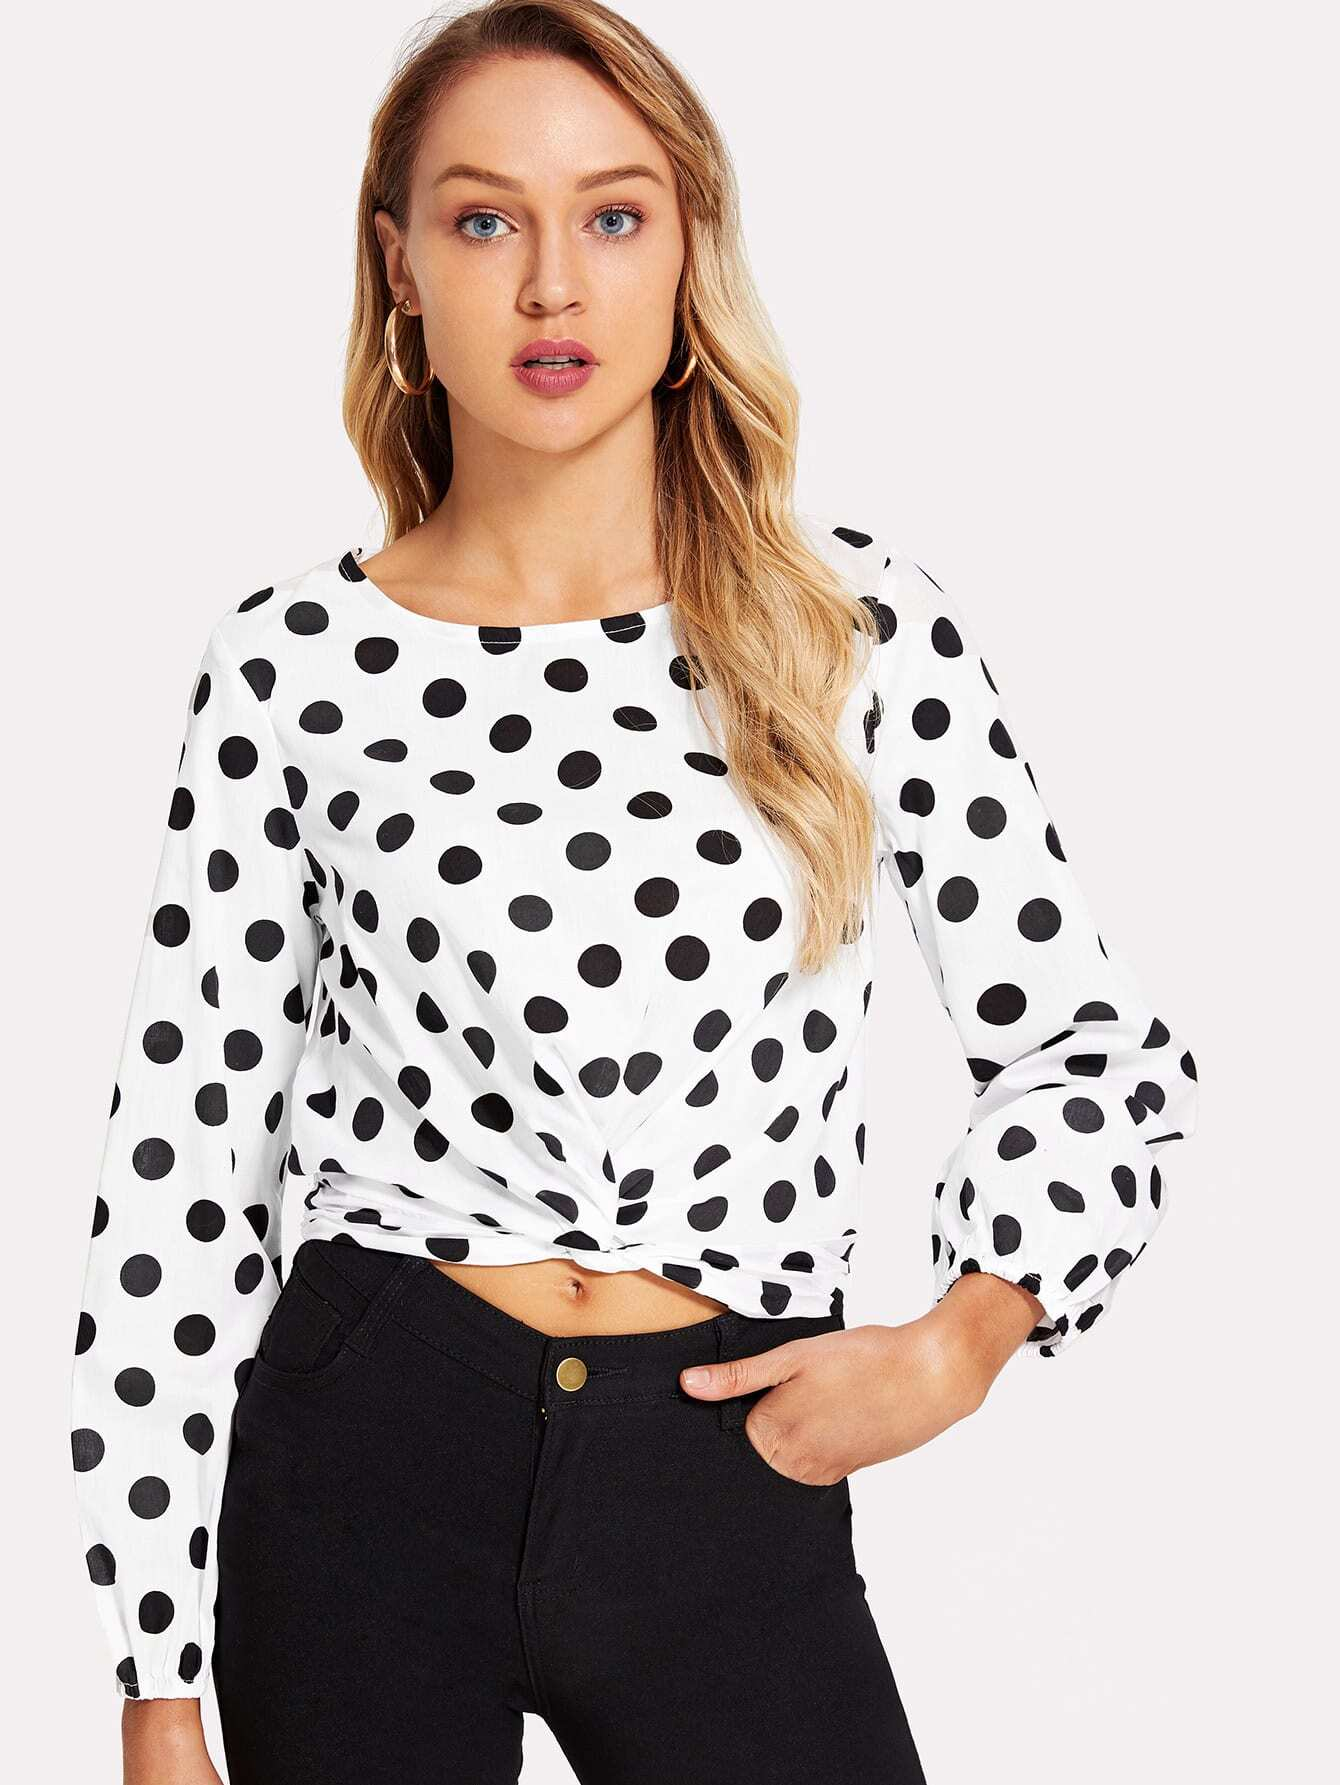 Twist Front Tie Back Polka Dot Top ruffle armhole tie back polka dot top